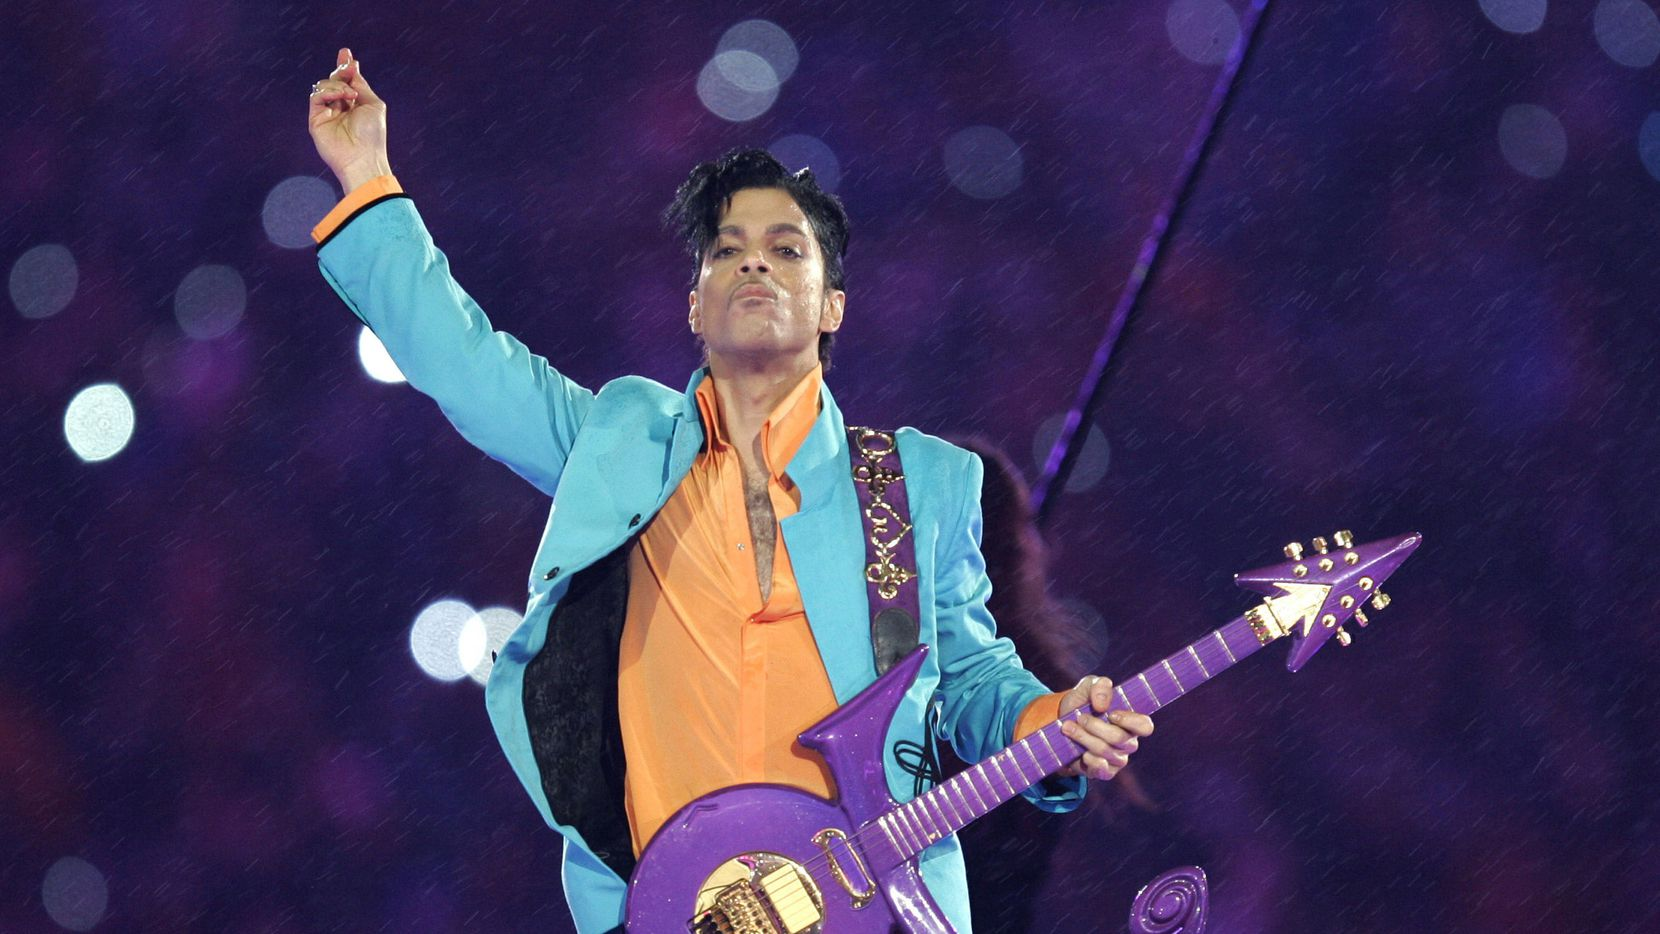 Prince performed in the halftime show at Super Bowl XLI in Miami in 2007.